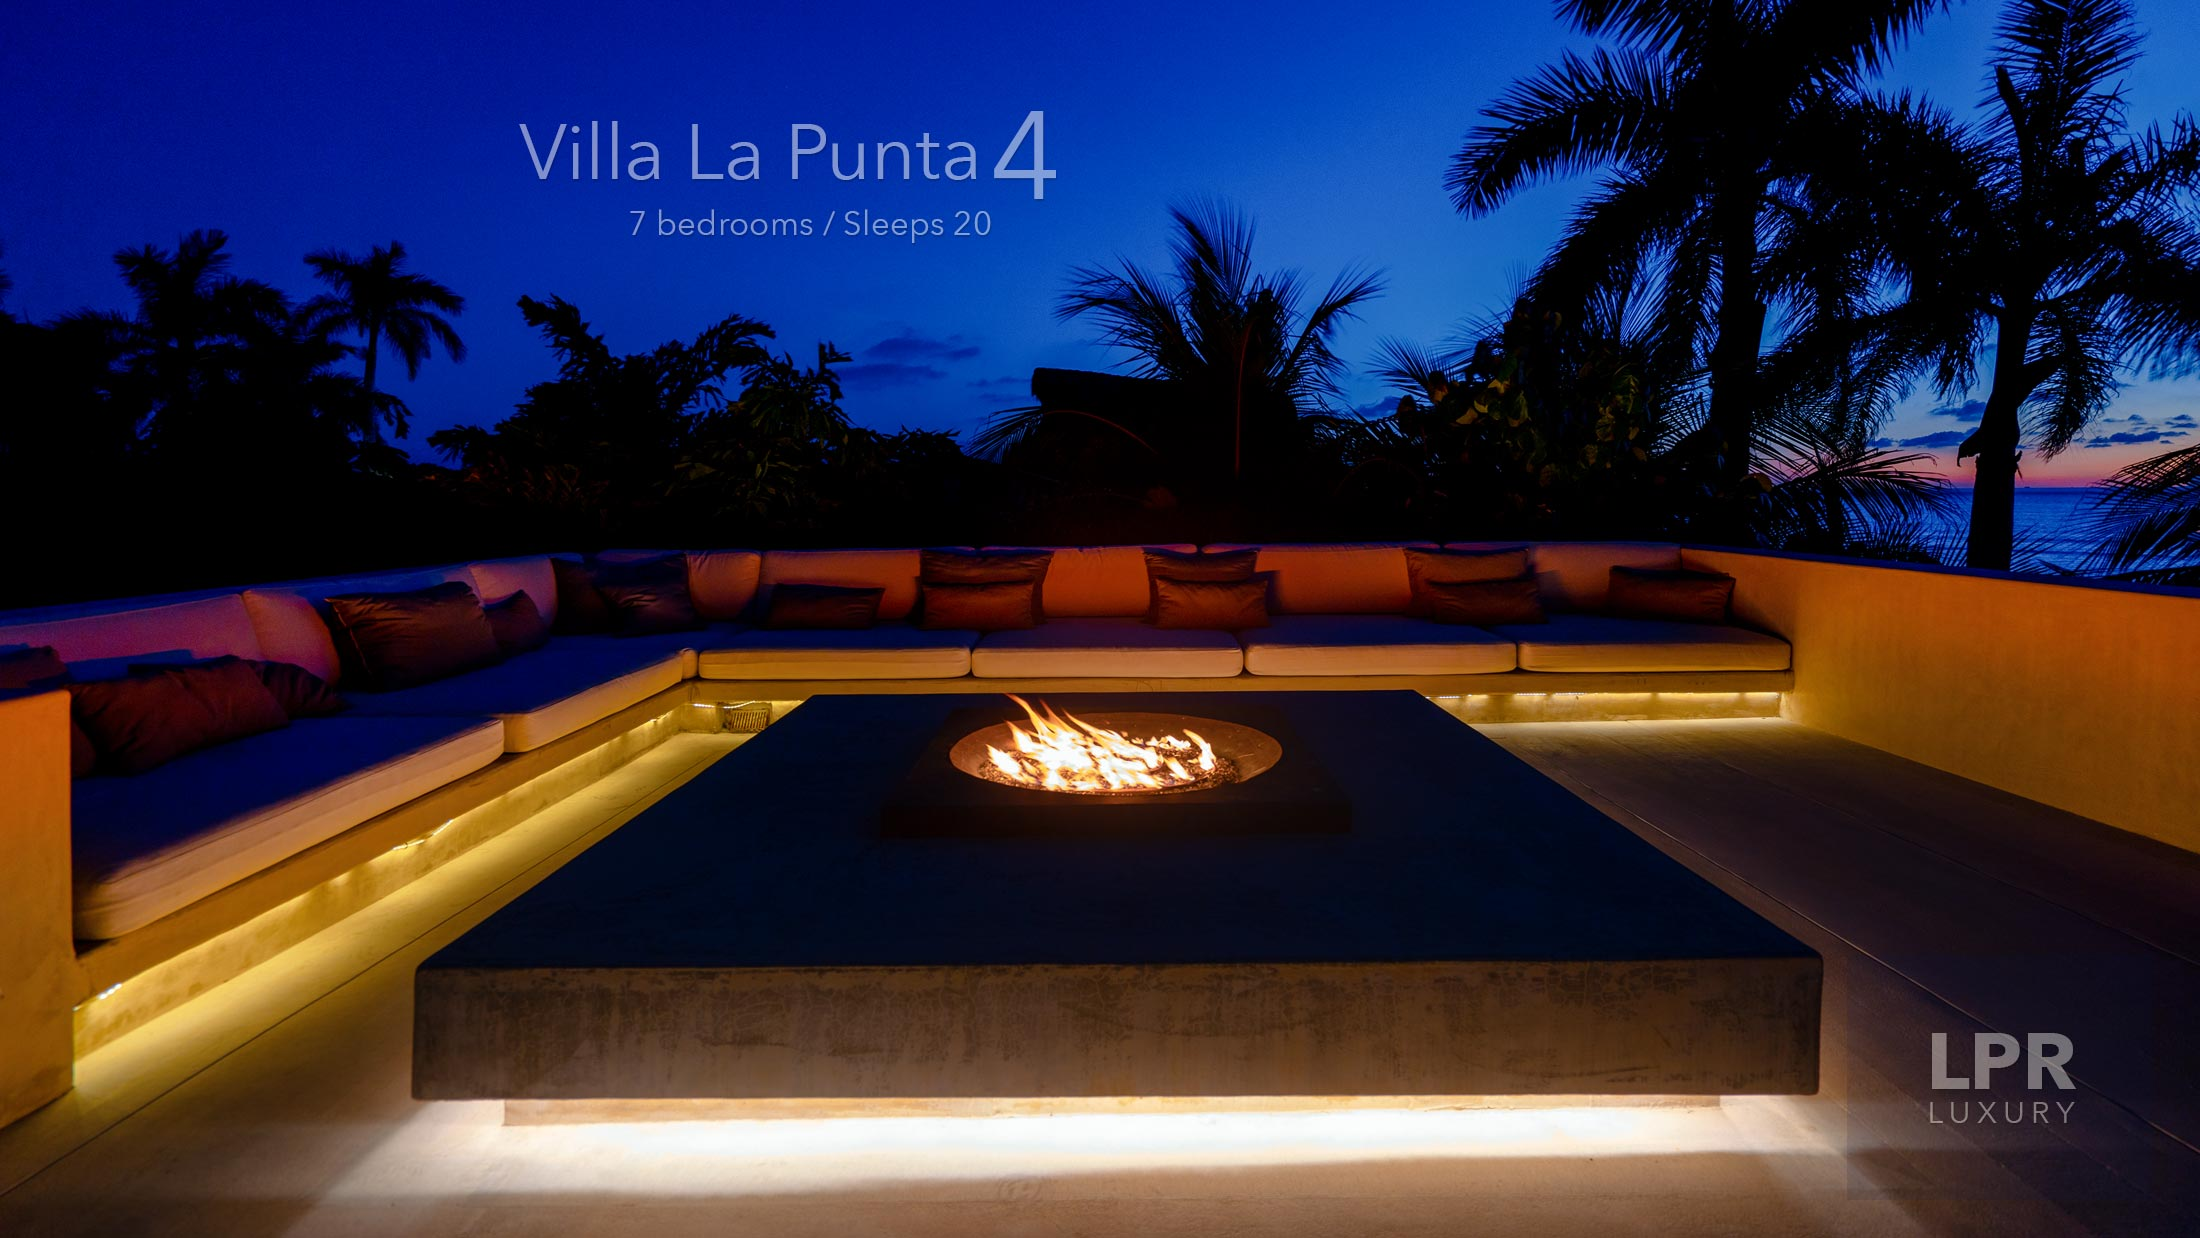 Villa La Punta 4 - Ultra luxury, ultra private vacation rental villa estate at the exclusive Punta Mita Resort, Riviera Nayarit, Mexico